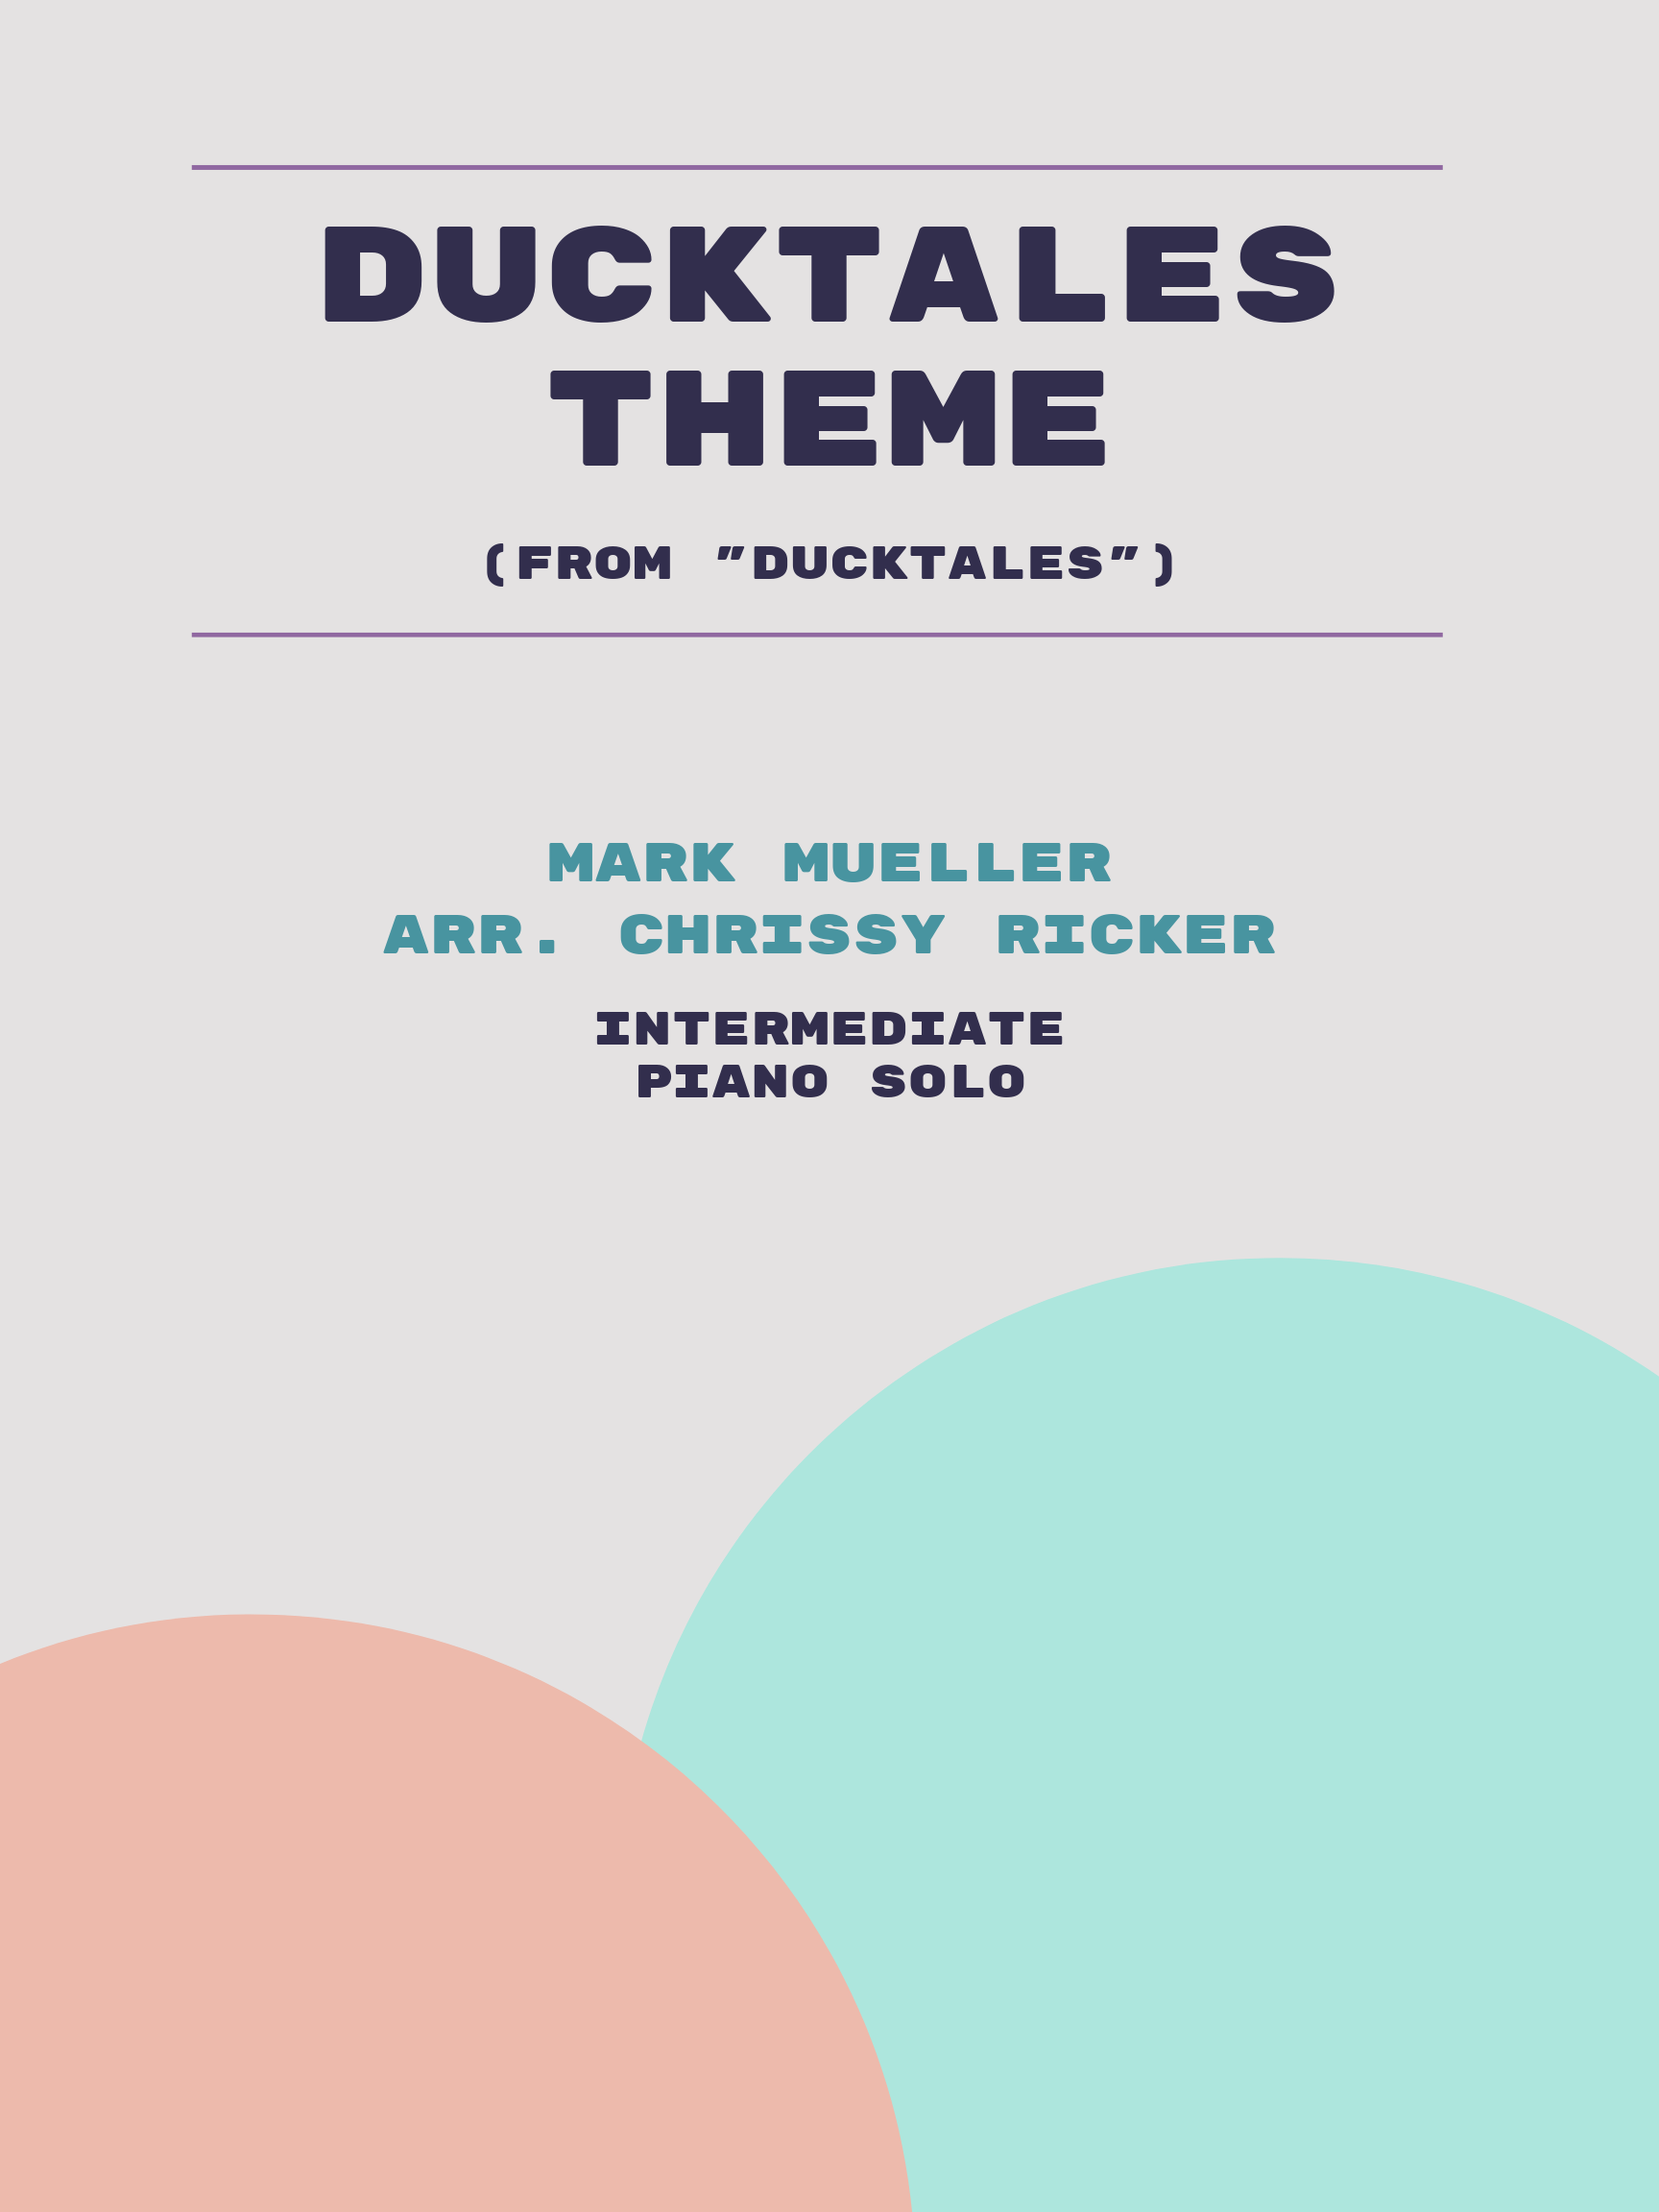 DuckTales Theme by Mark Mueller